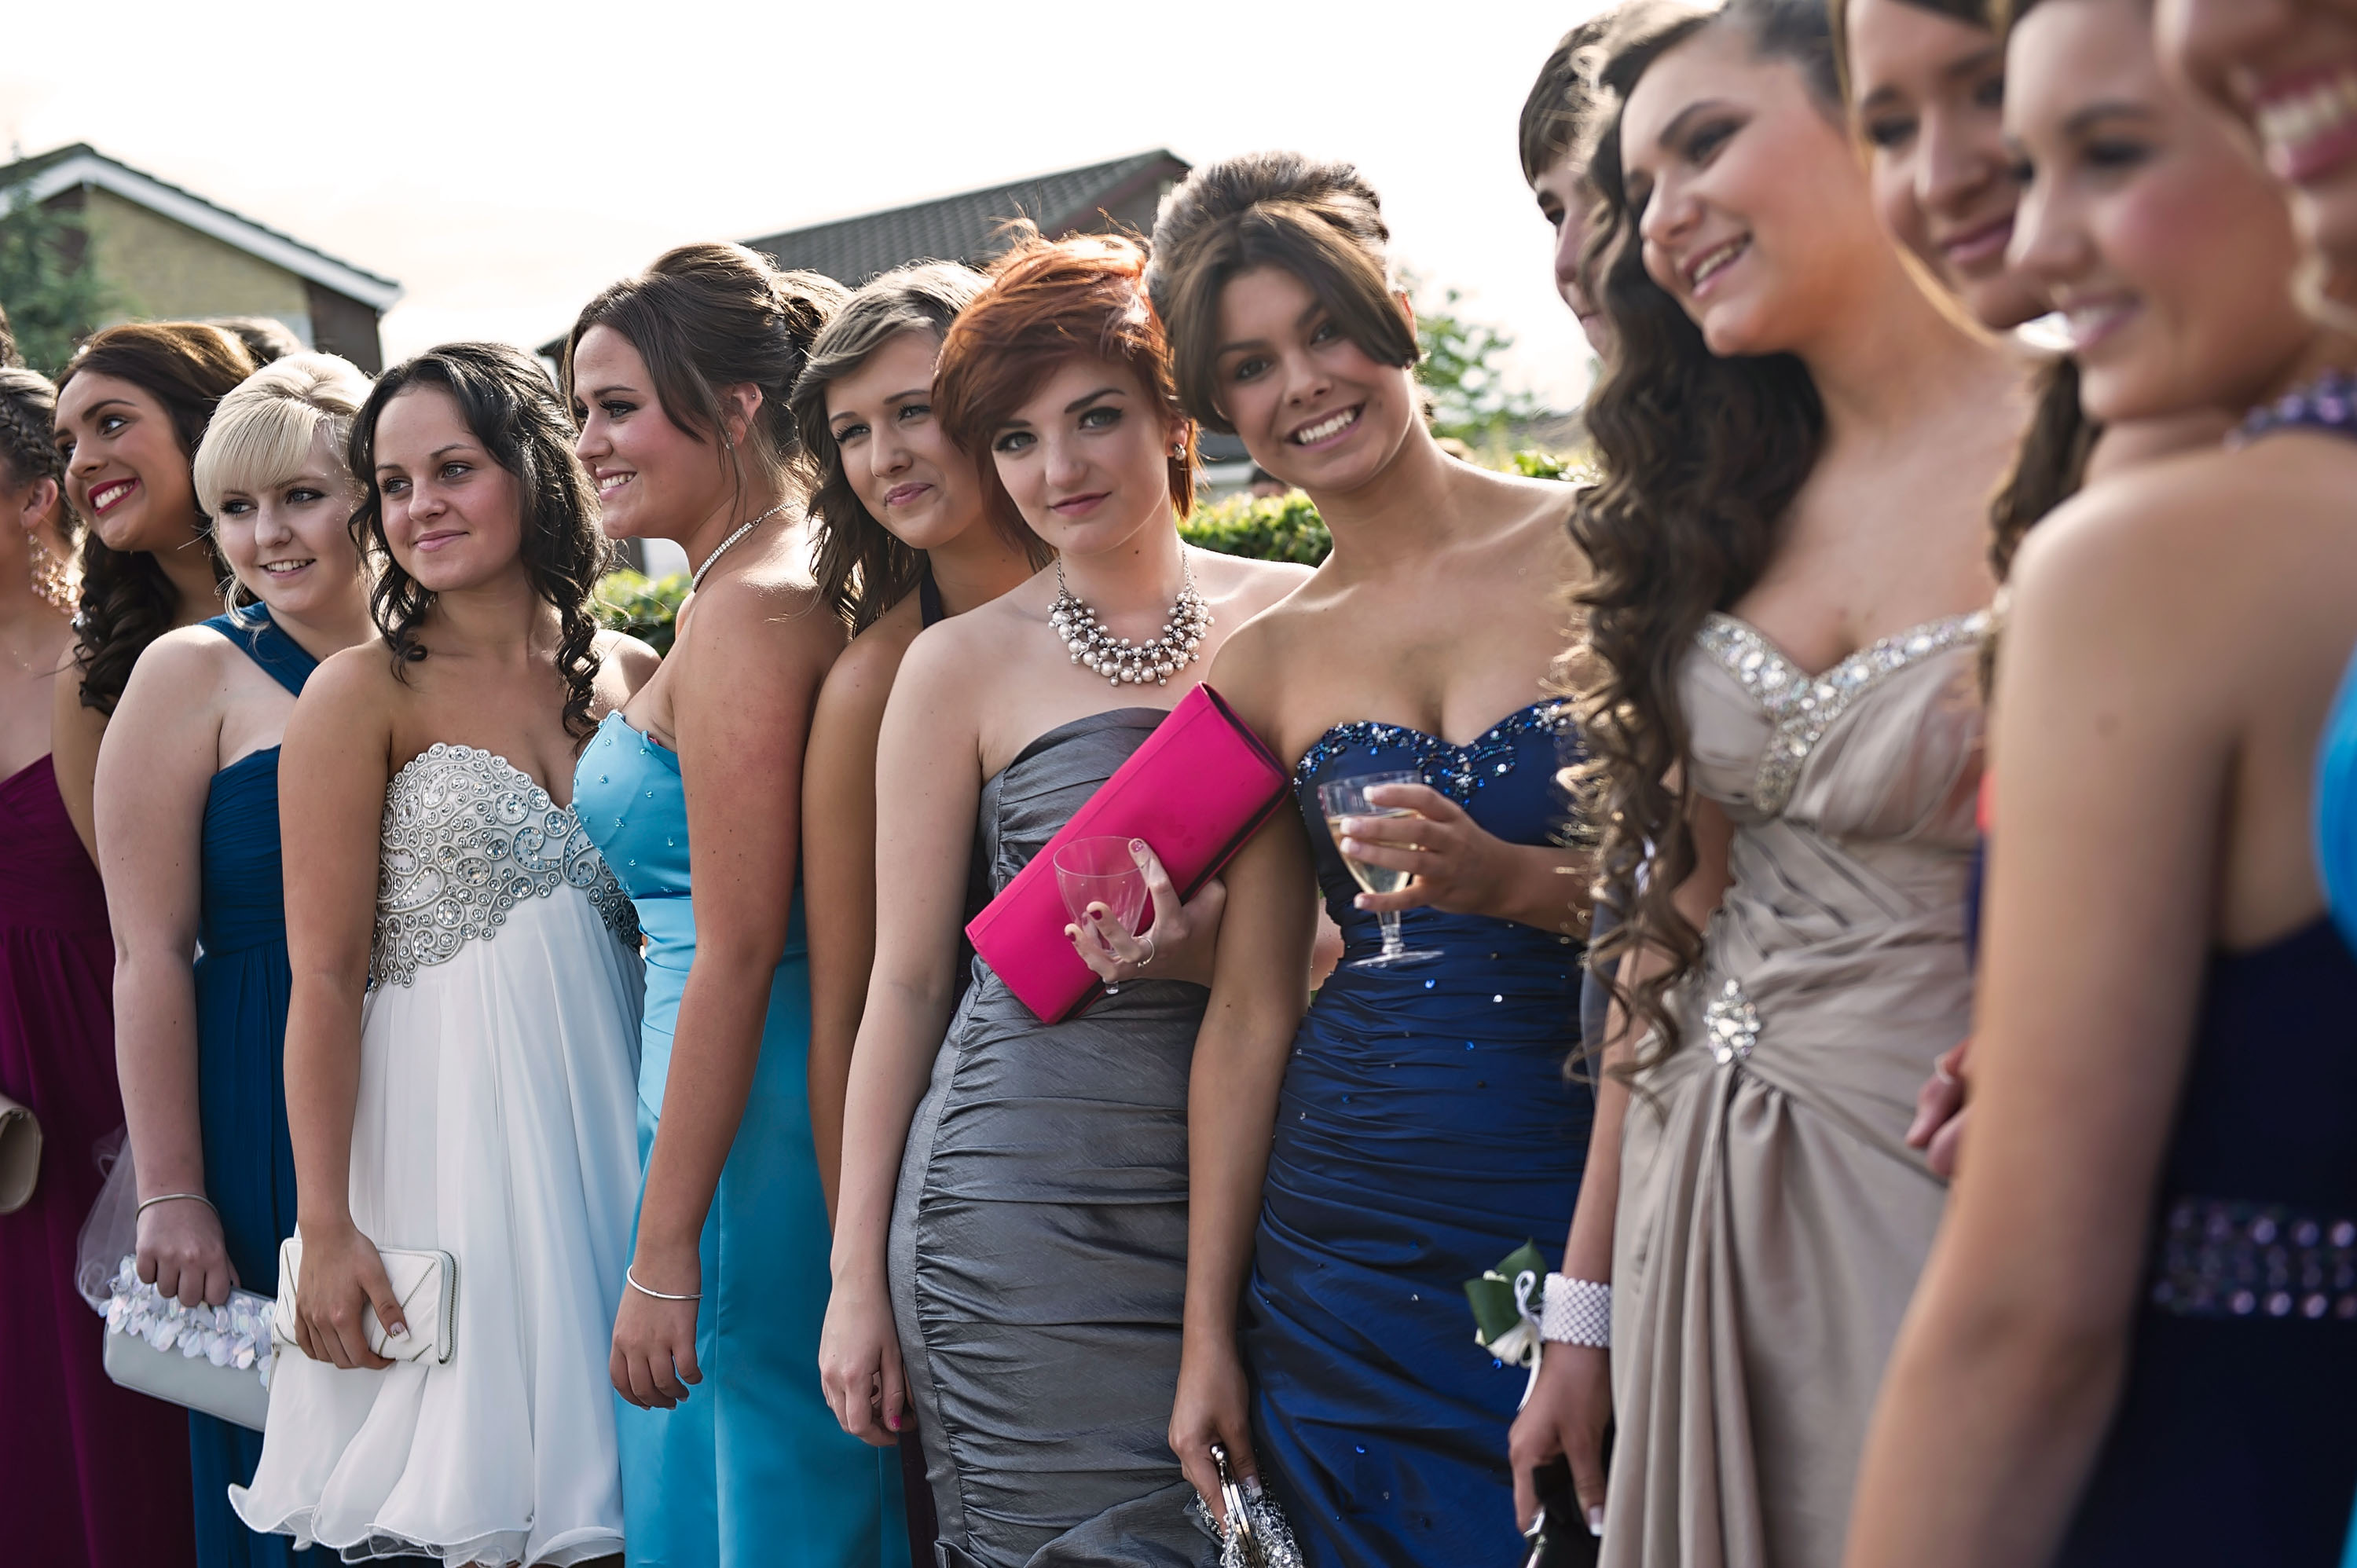 Going To Prom Alone 7 Reasons Why Not Having A Date Is The Best Decision You Ll Ever Make